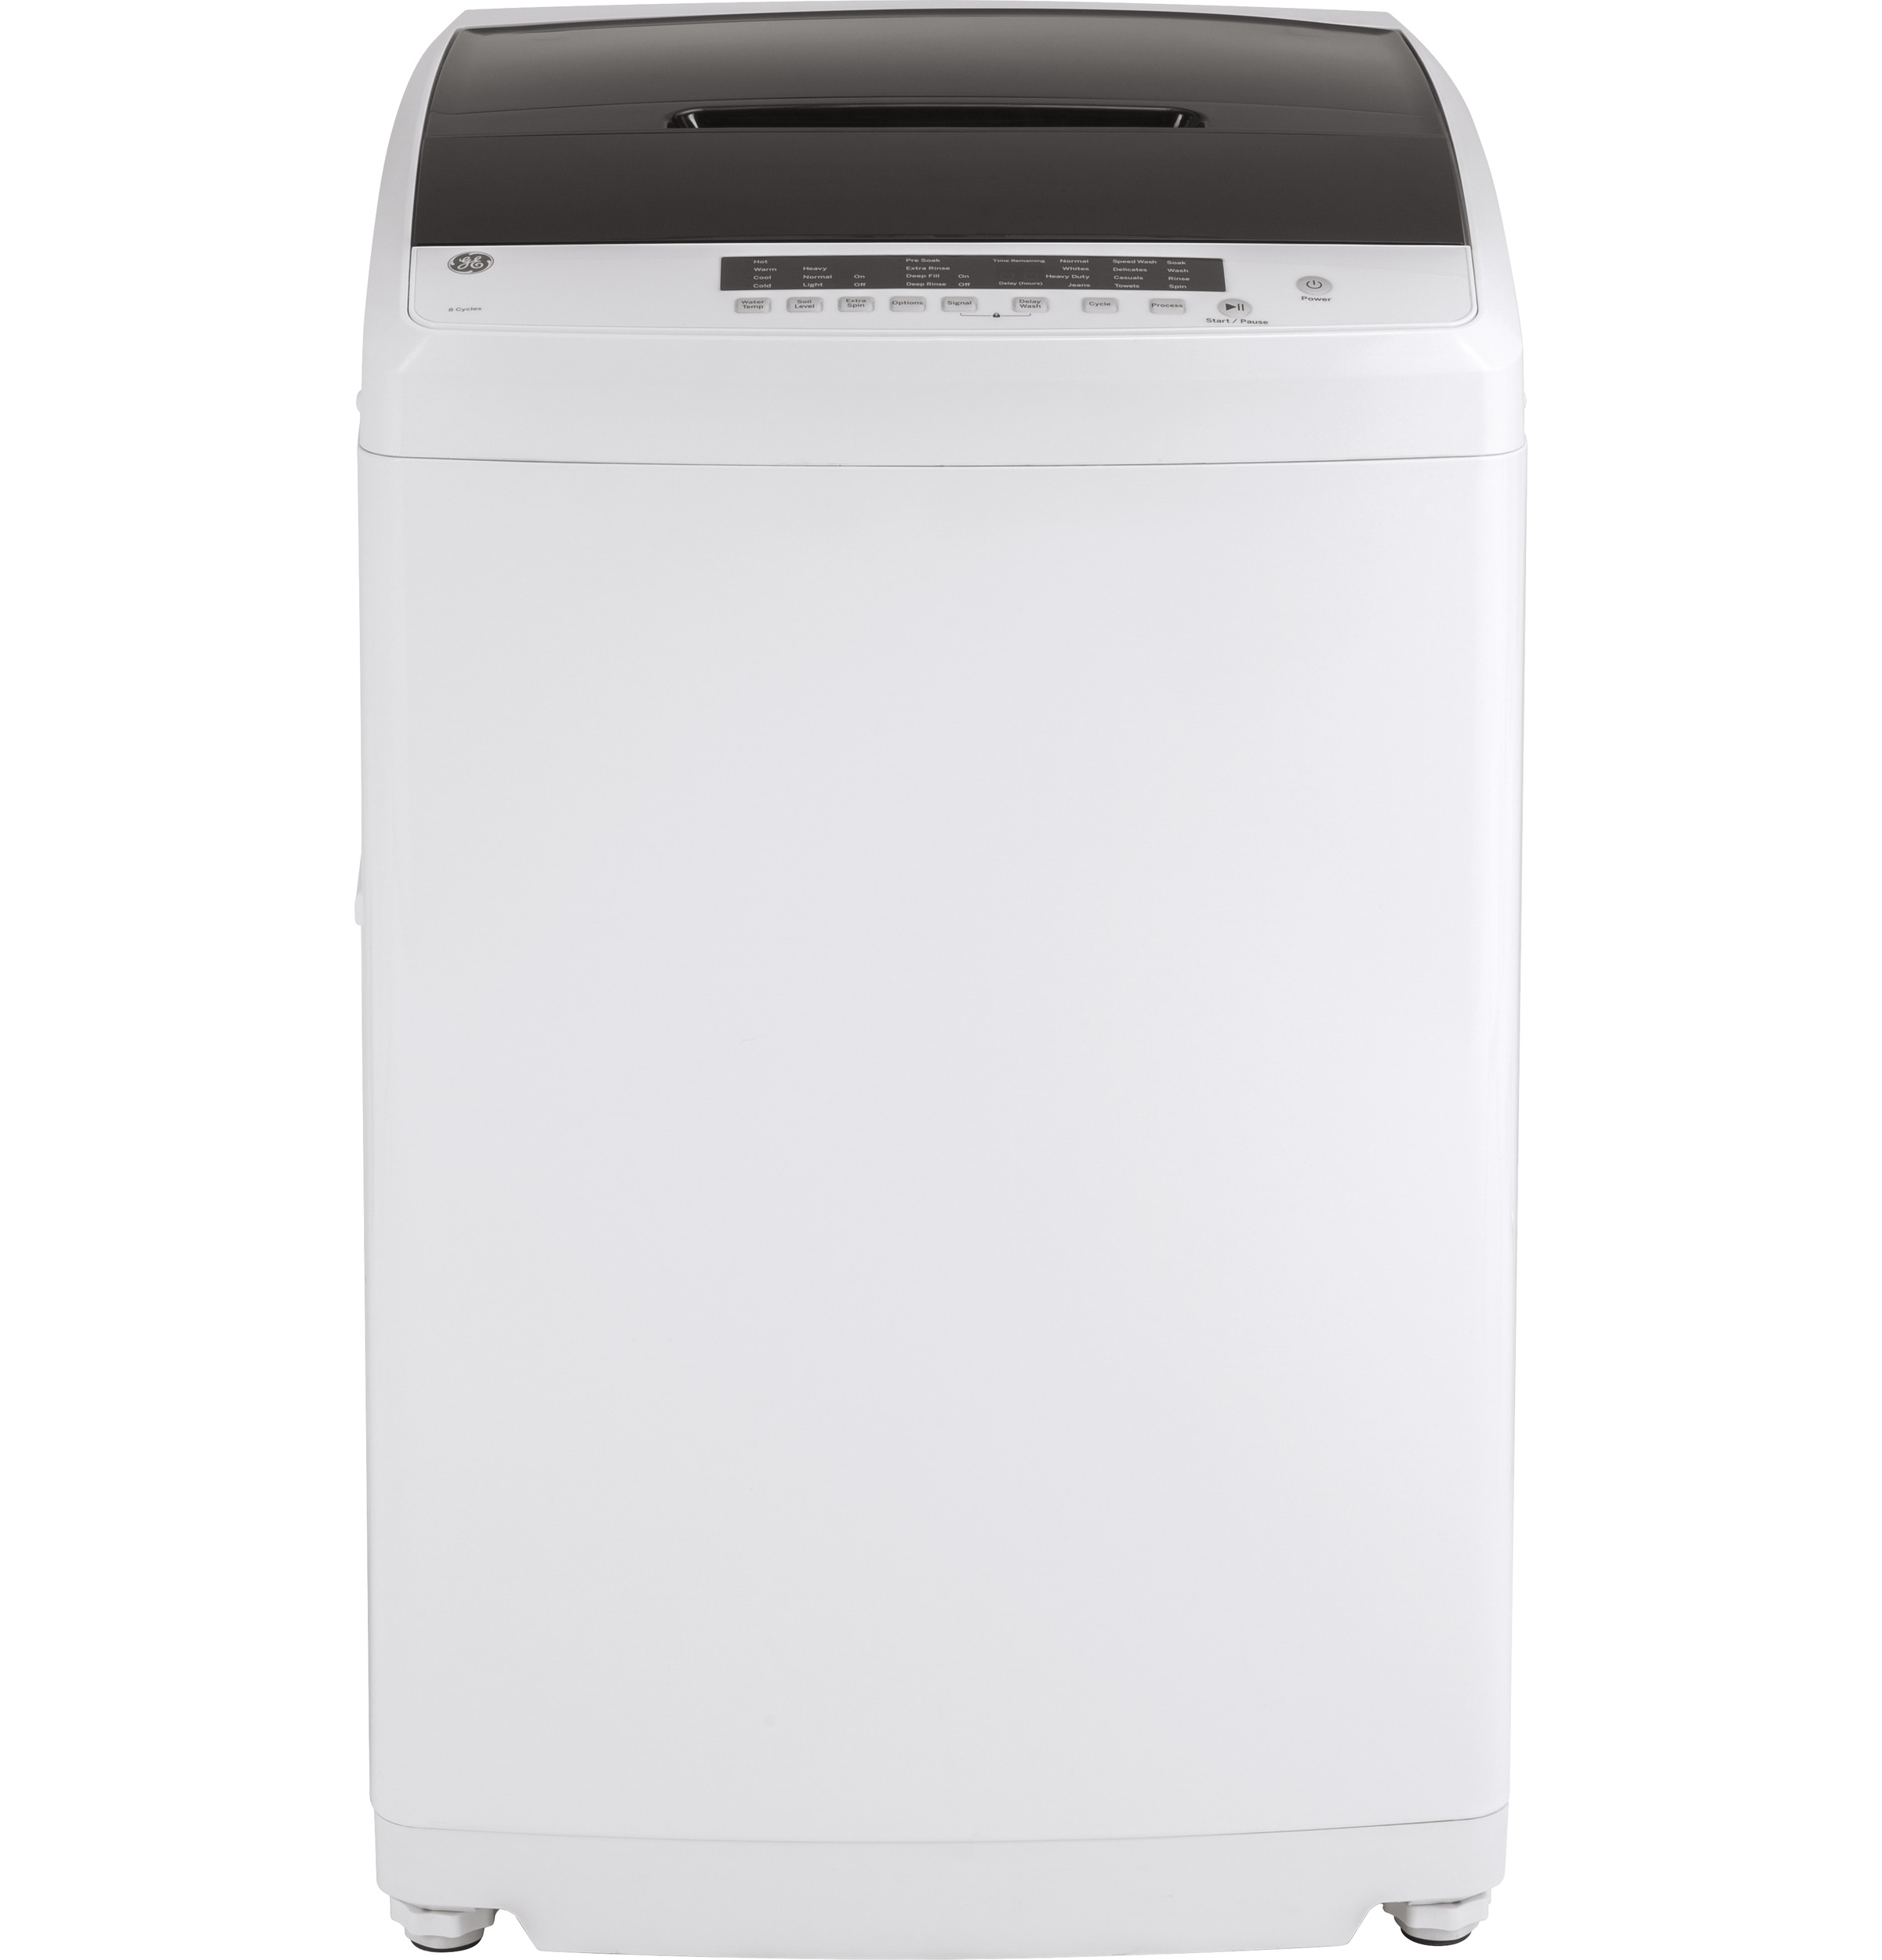 GE Washer 24 White GNW128PSMWW in White color showcased by Corbeil Electro Store